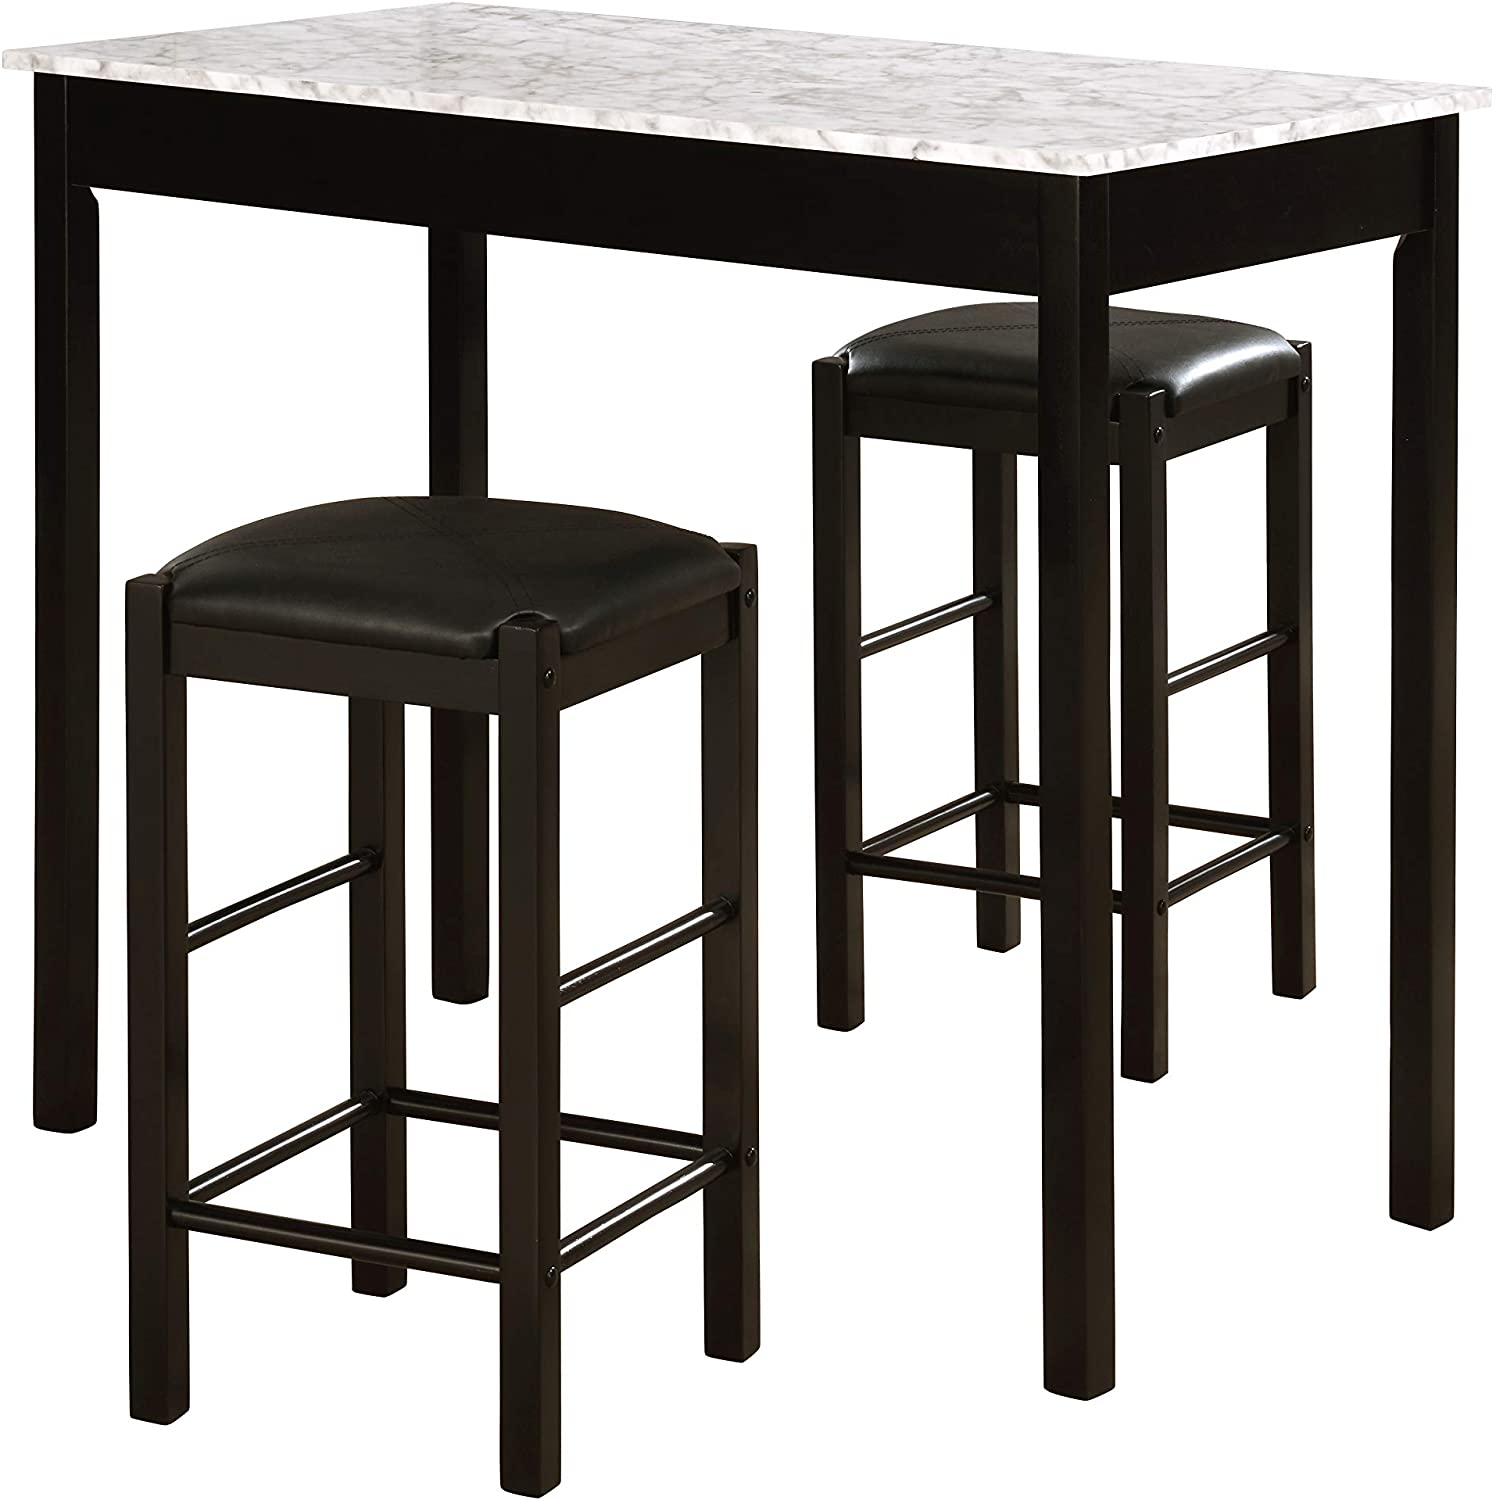 Linon Black 3 Piece Faux Marble Tavern Set